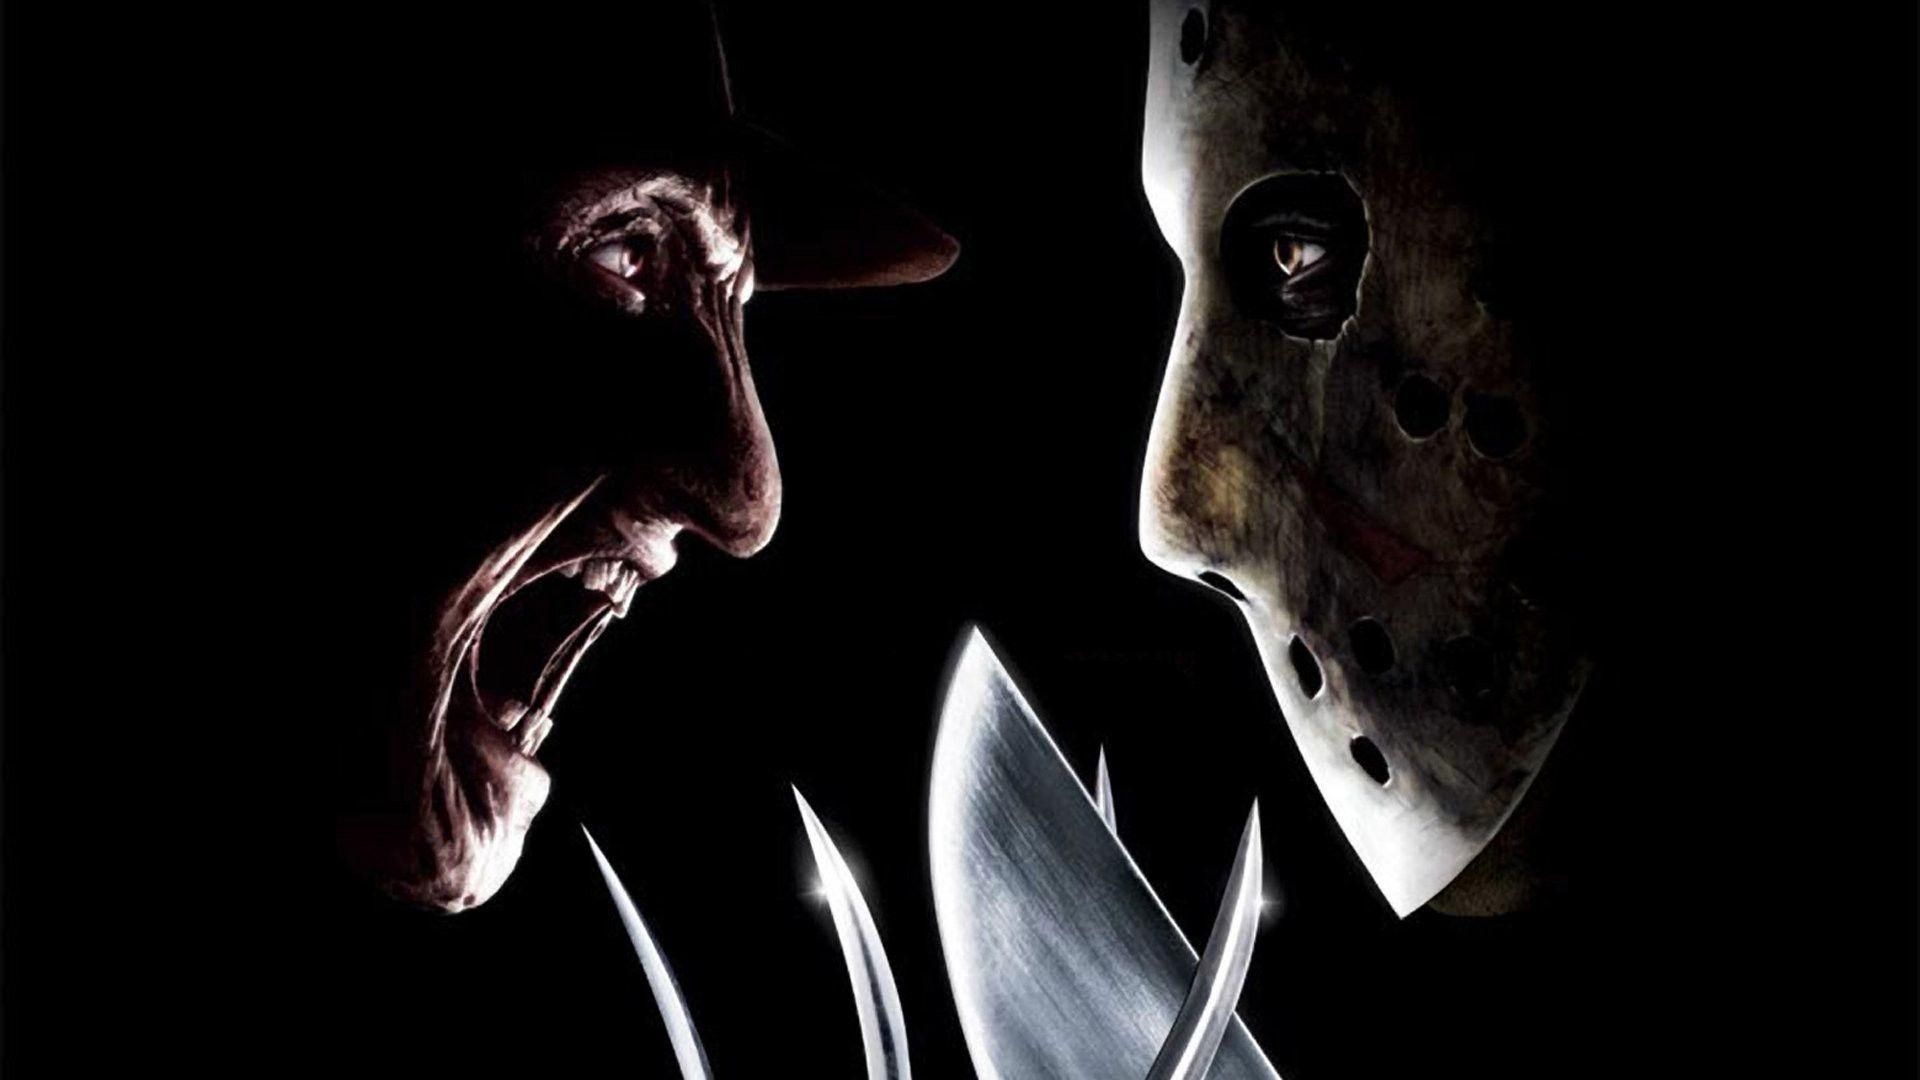 freddy vs. jason wallpapers - wallpaper cave